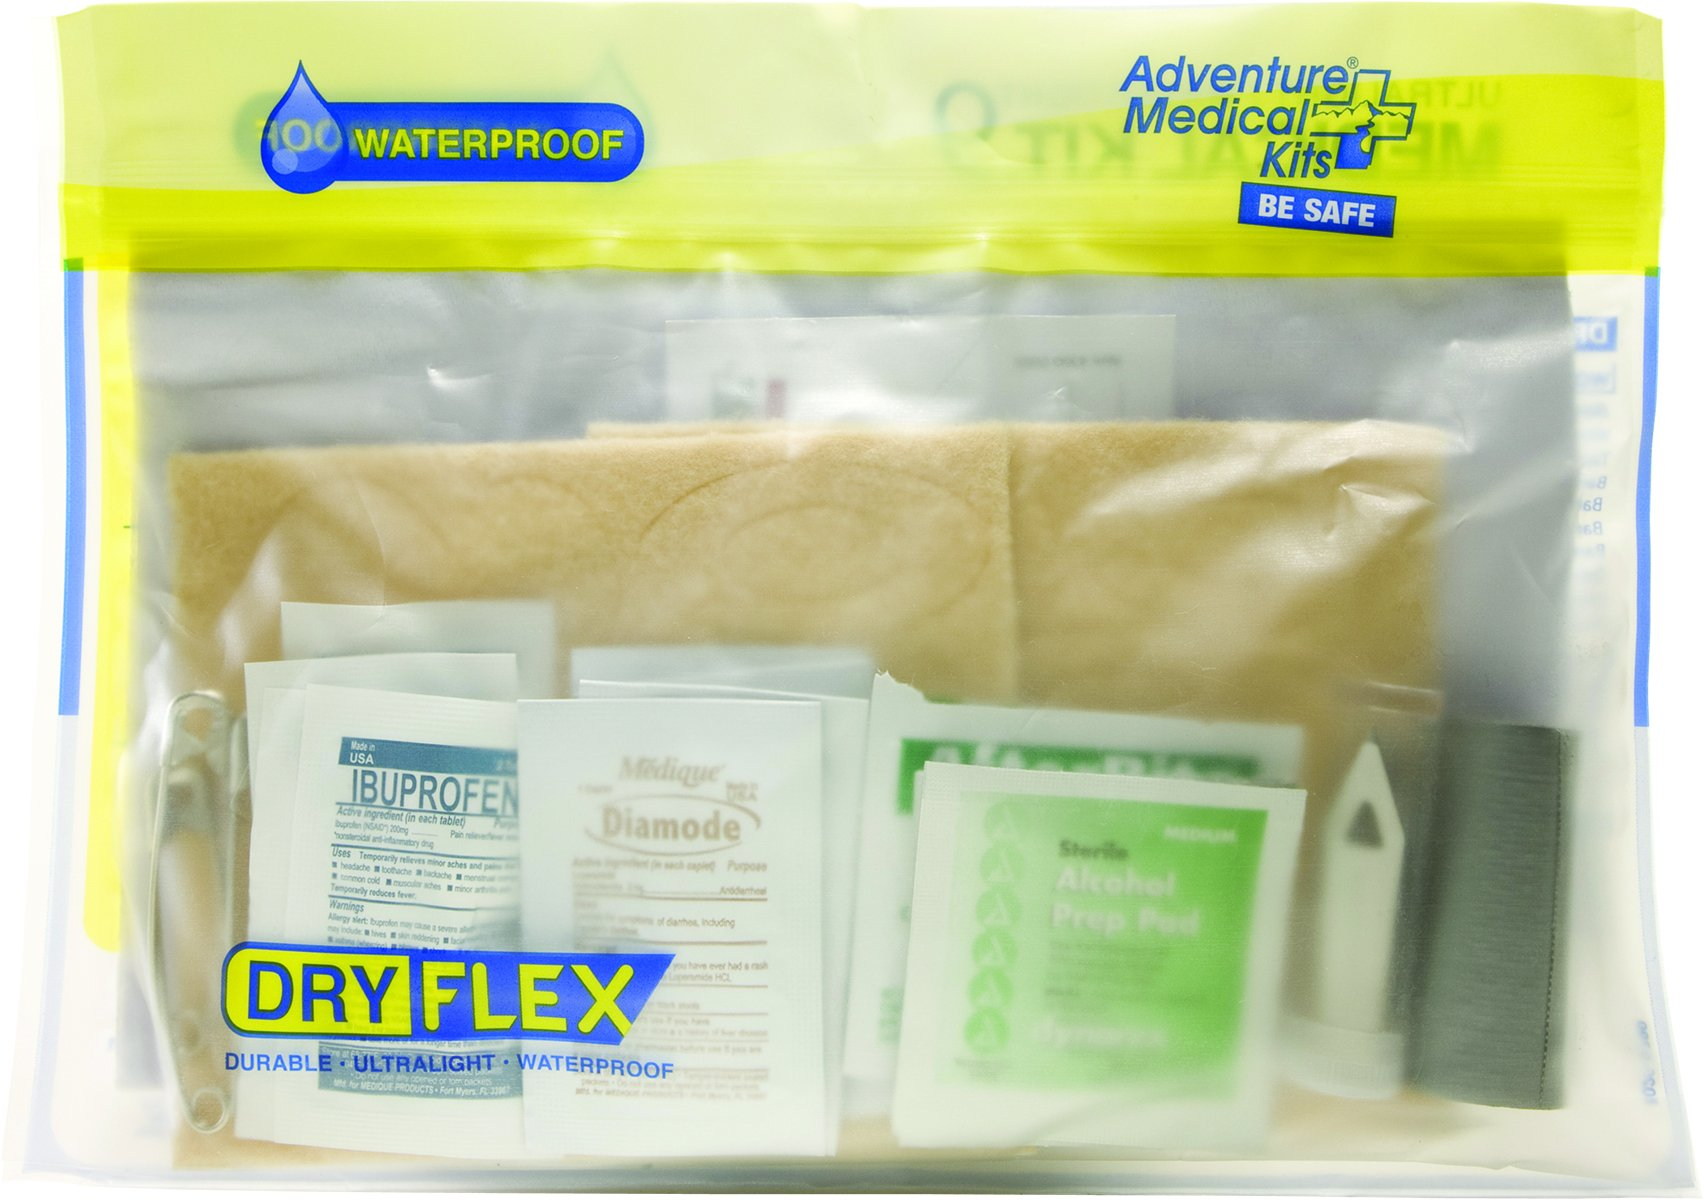 Adventure Medical Kits Ultralight and Watertight .9 First Aid Kit by Adventure Medical Kits (Image #5)